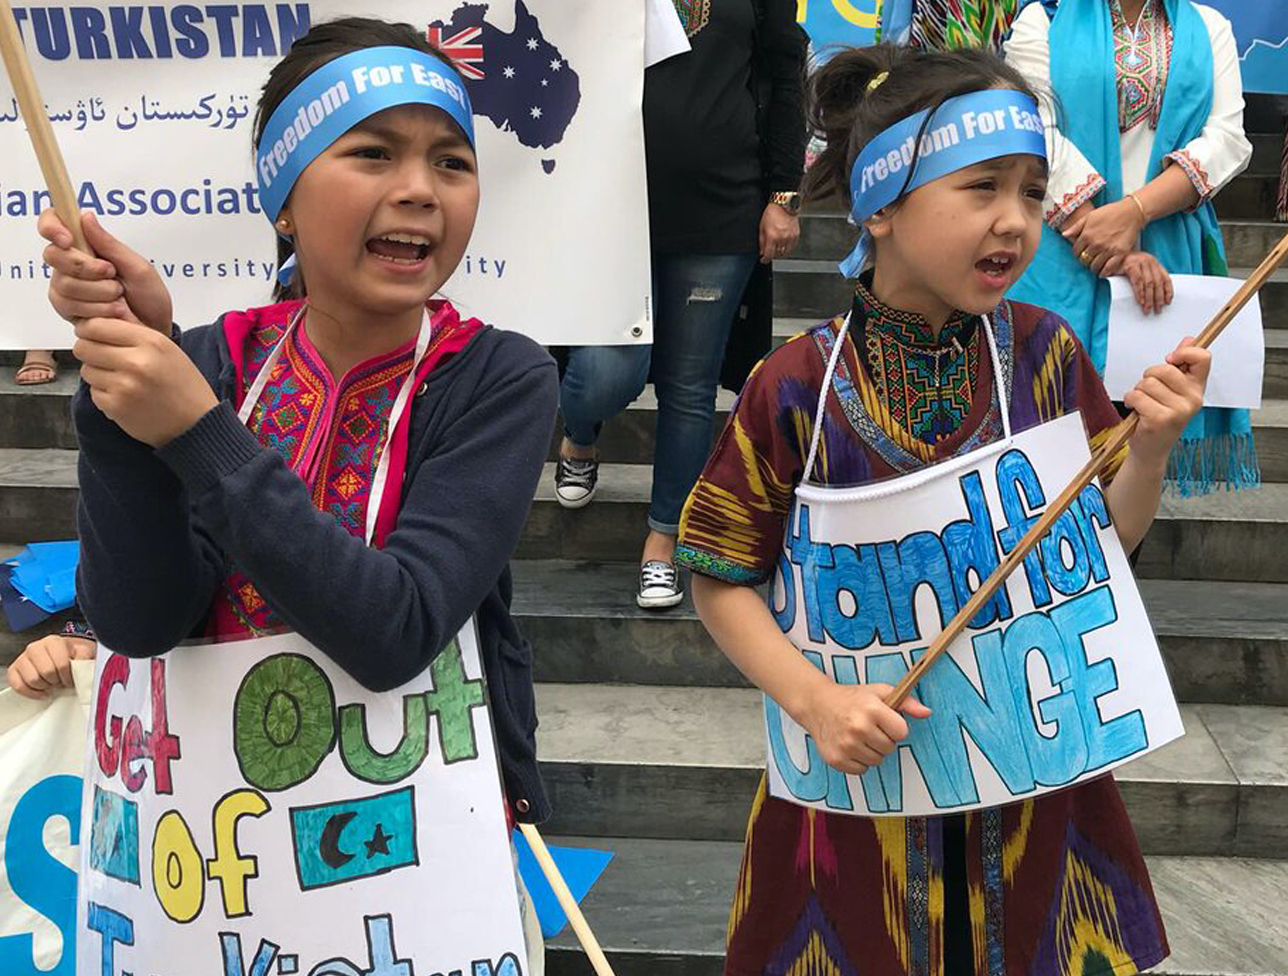 This is an image of Uyghur children protesting